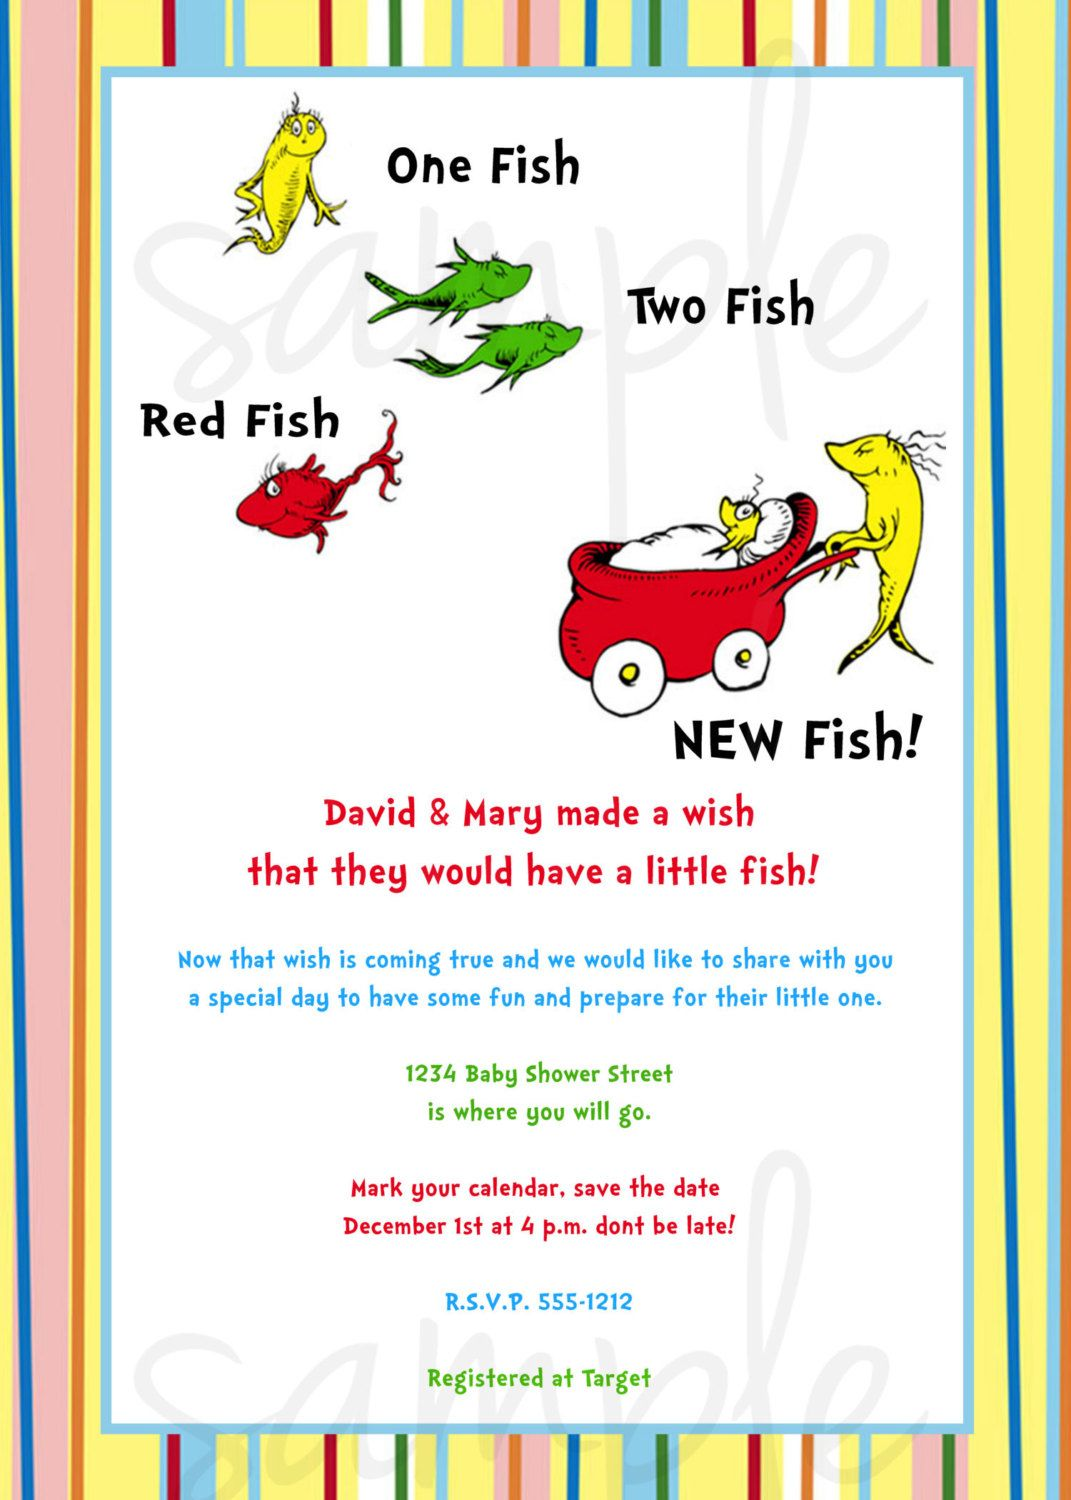 Dr Seuss One Fish Two Fish Baby Shower Invitation. | Showers in the ...